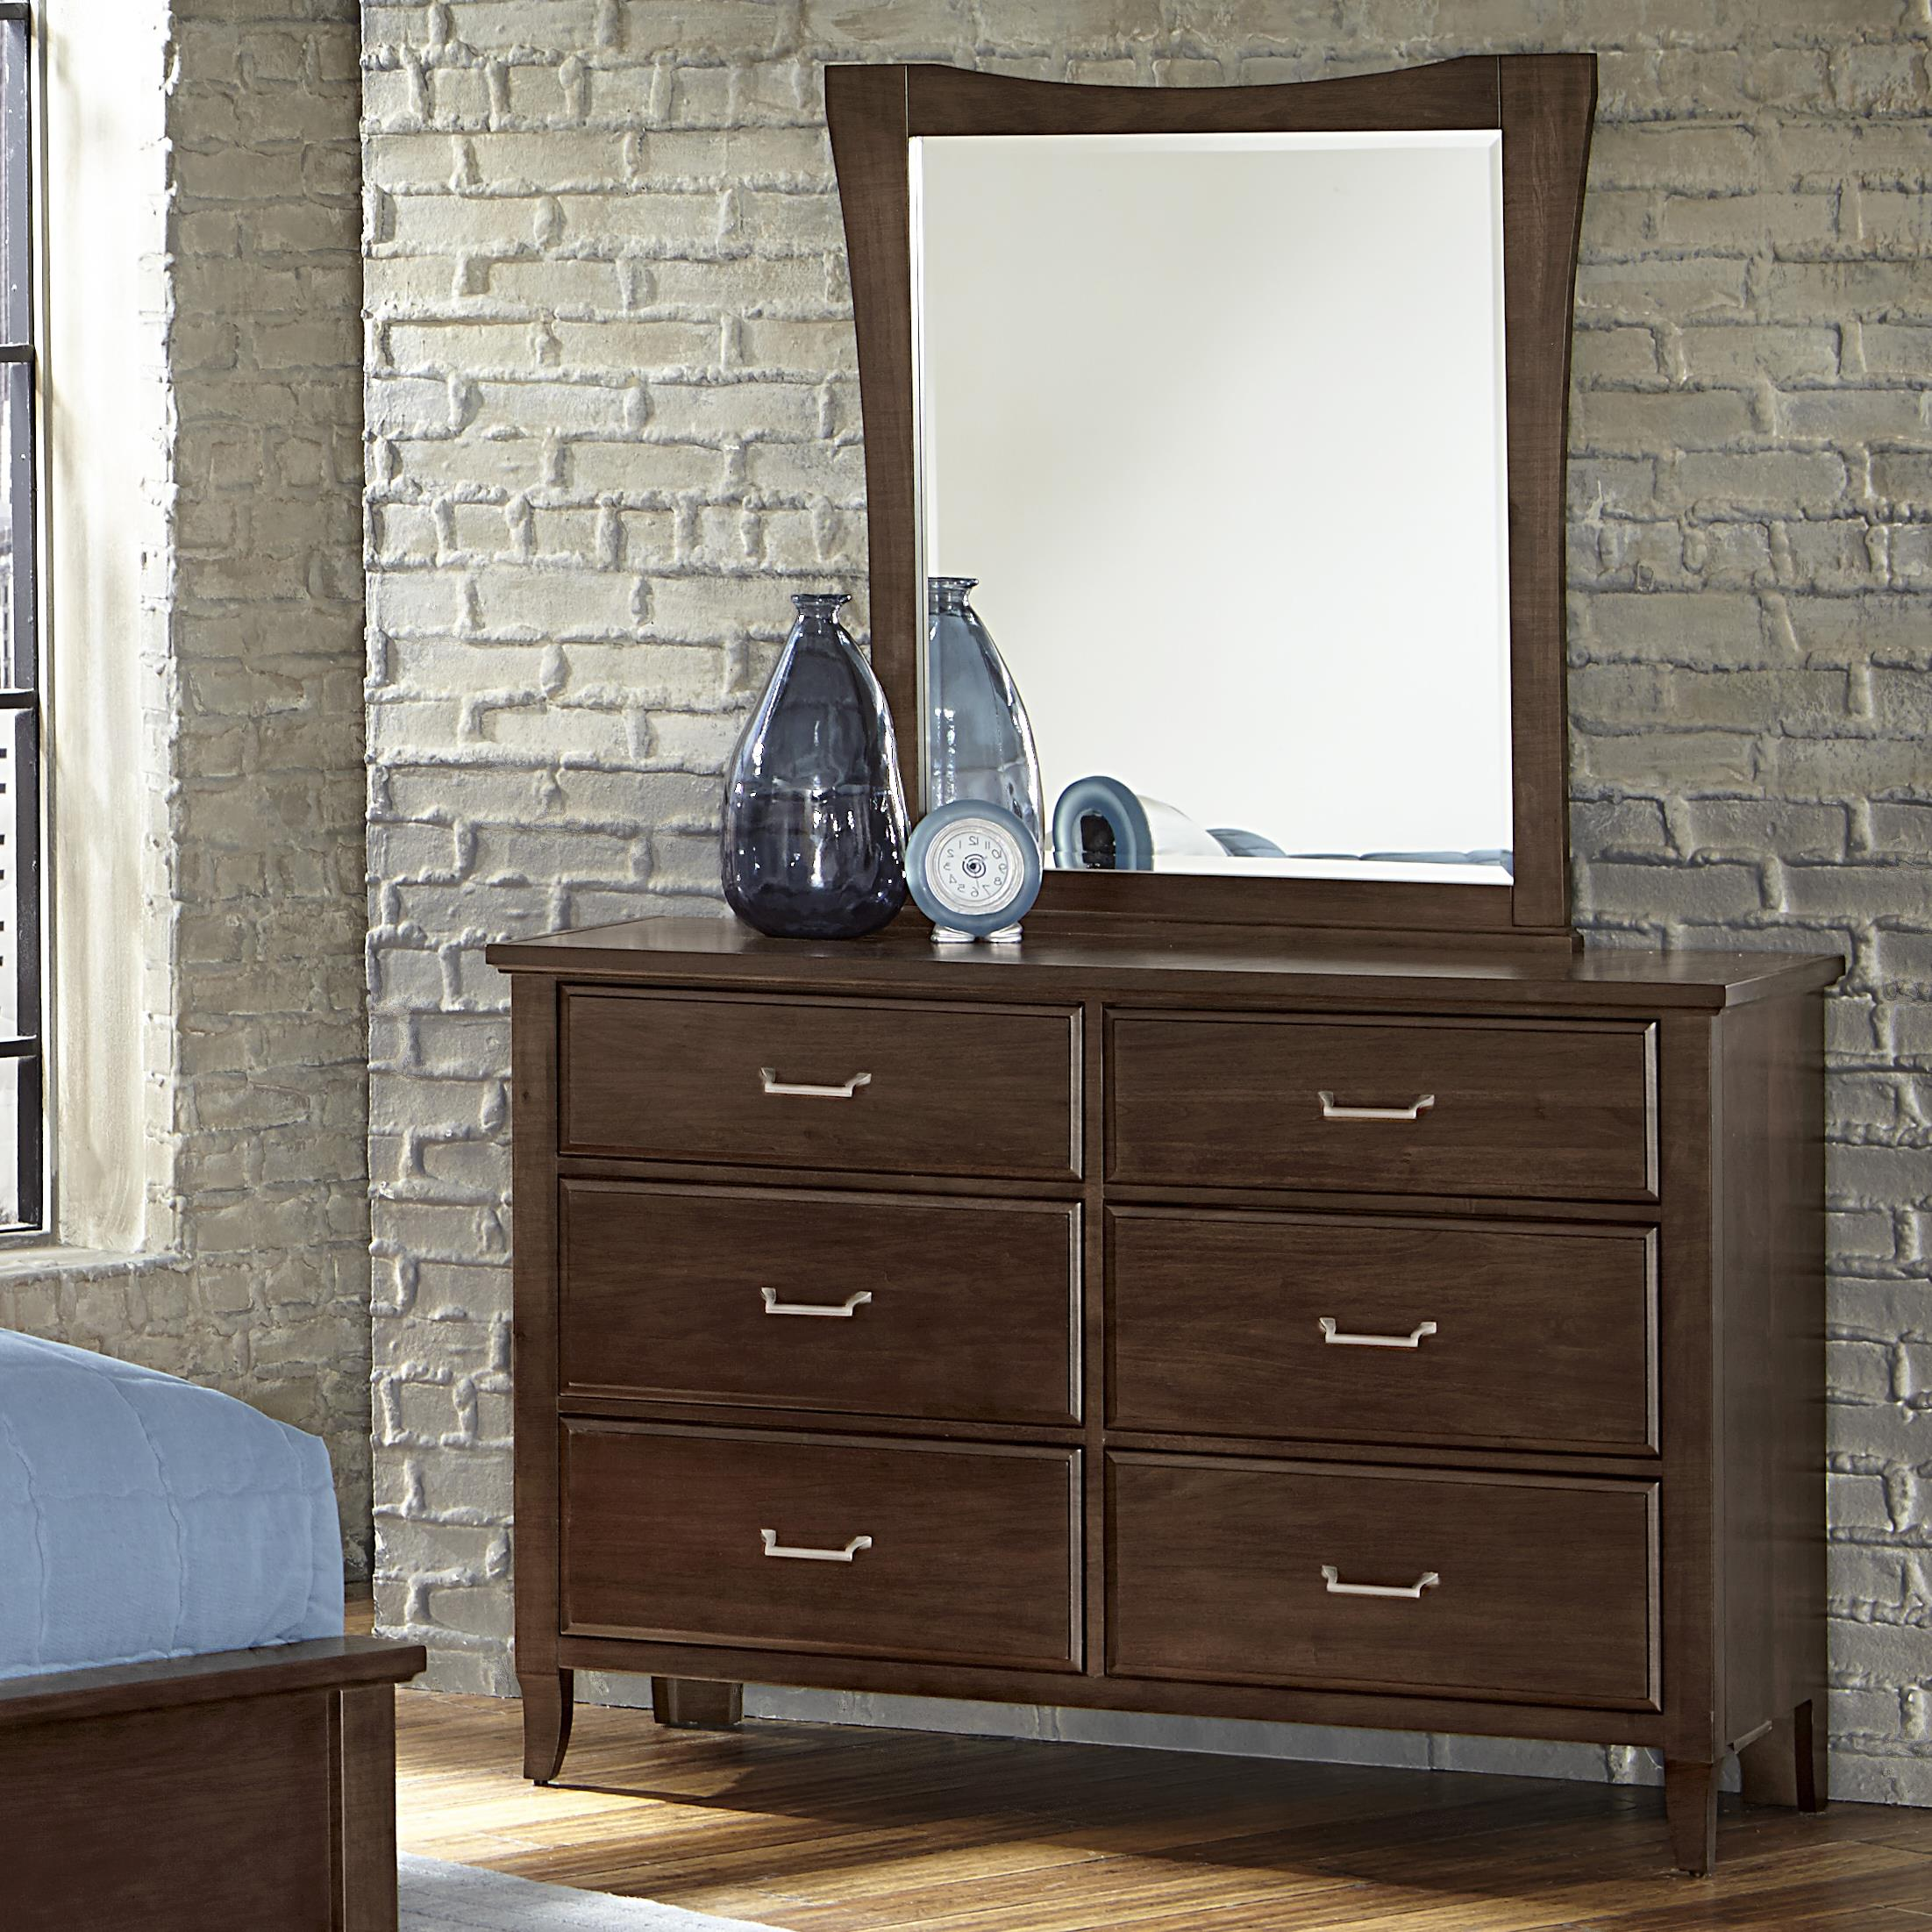 Vaughan Bassett Commentary Dresser - 6 drawers & Youth Wing Mirror - Item Number: 392-001+443